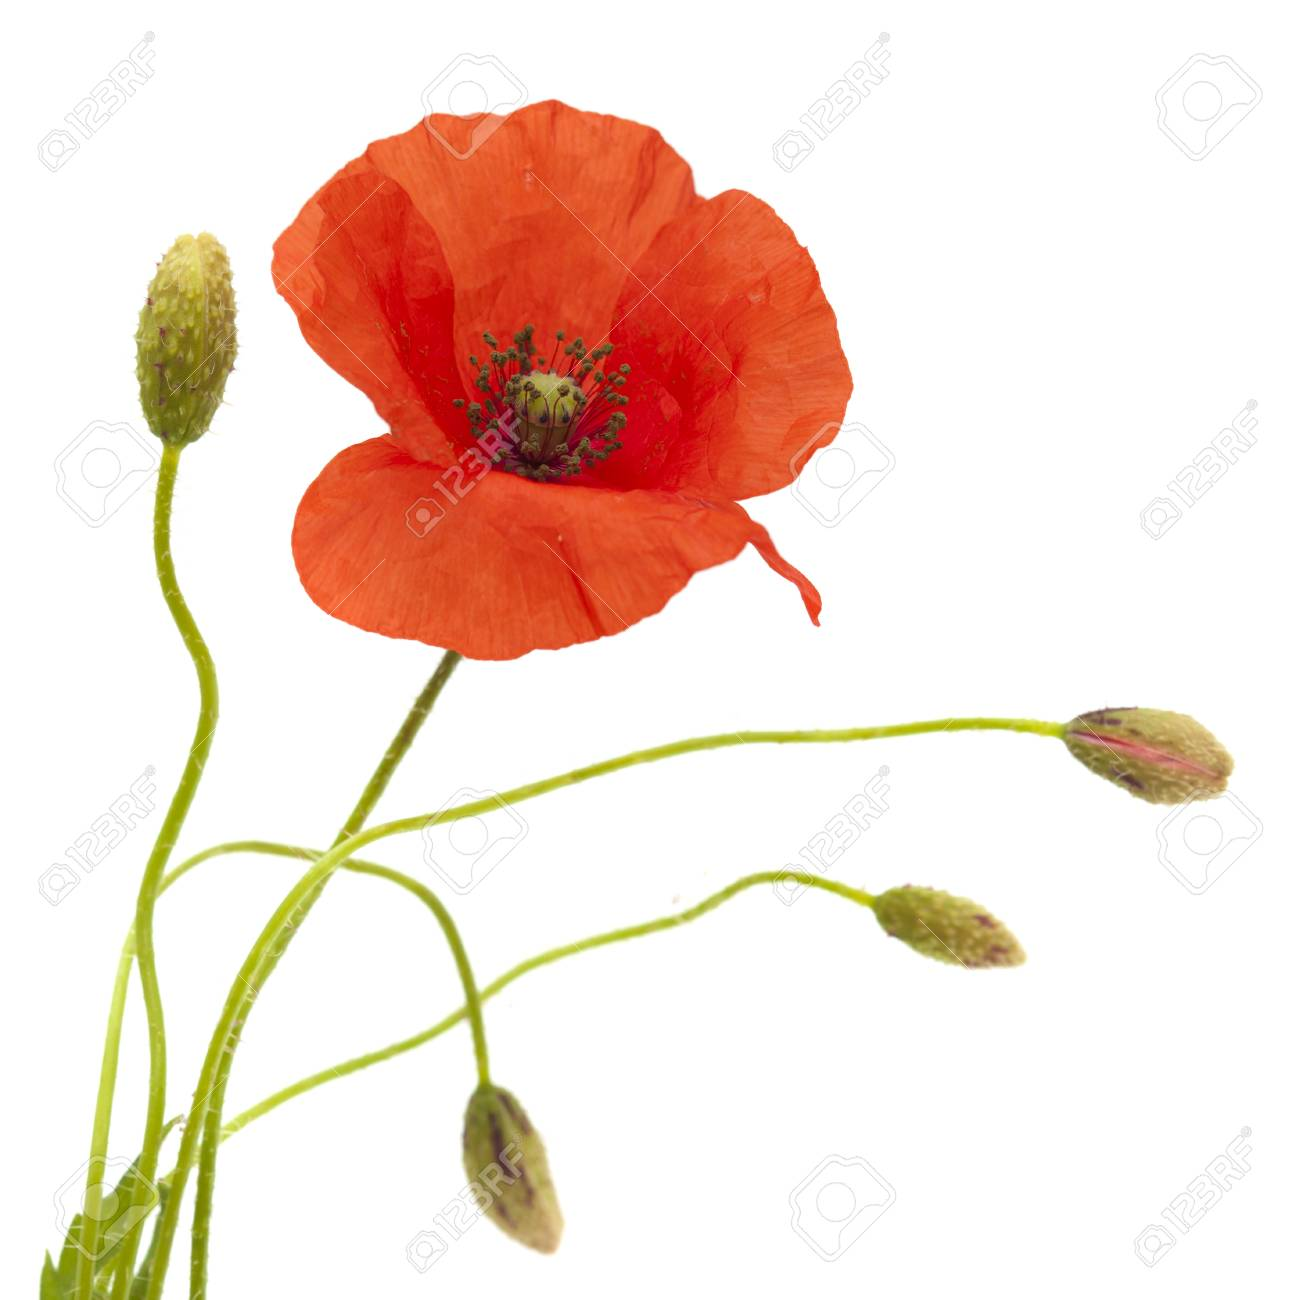 Red Poppy Flower And Buds Isolated On White Background Stock Photo